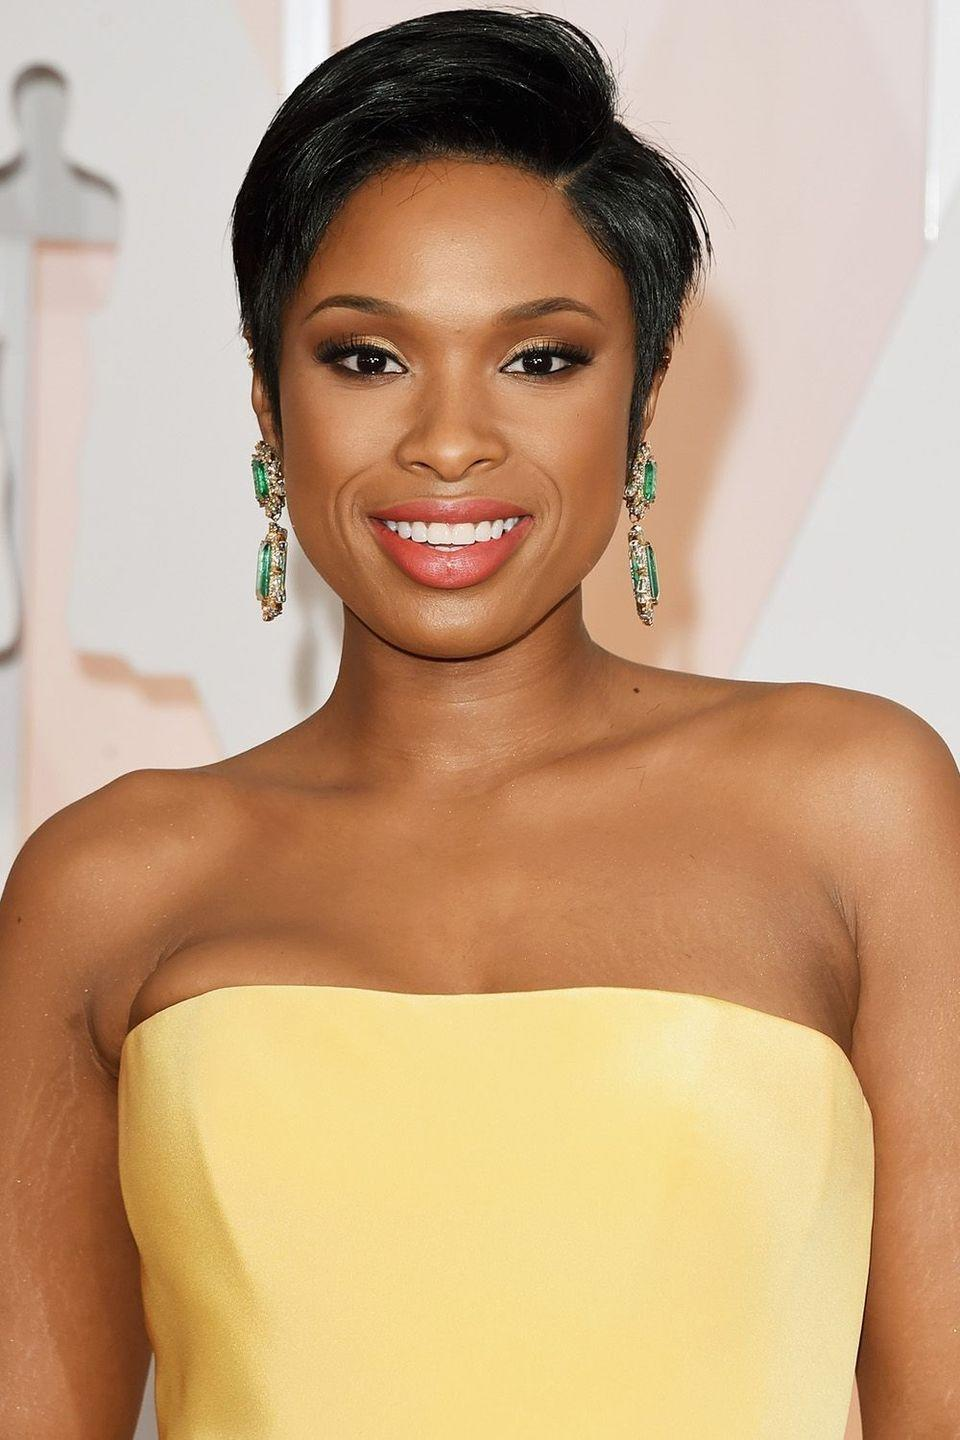 """<p>Despite many that indulge in the Hollywood partying lifestyle, Jennifer Hudson can confidently say """"I've never had a drink in my life."""" In an interview with Chelsea Handler, the singer and actress explained, """"I've never been interested. Nobody ever believes it.""""</p><p><em>[h/t <a href=""""http://www.huffingtonpost.com/2013/10/11/jennifer-hudson-sober_n_4086340.html"""" rel=""""nofollow noopener"""" target=""""_blank"""" data-ylk=""""slk:Huffington Post"""" class=""""link rapid-noclick-resp"""">Huffington Post</a></em></p>"""